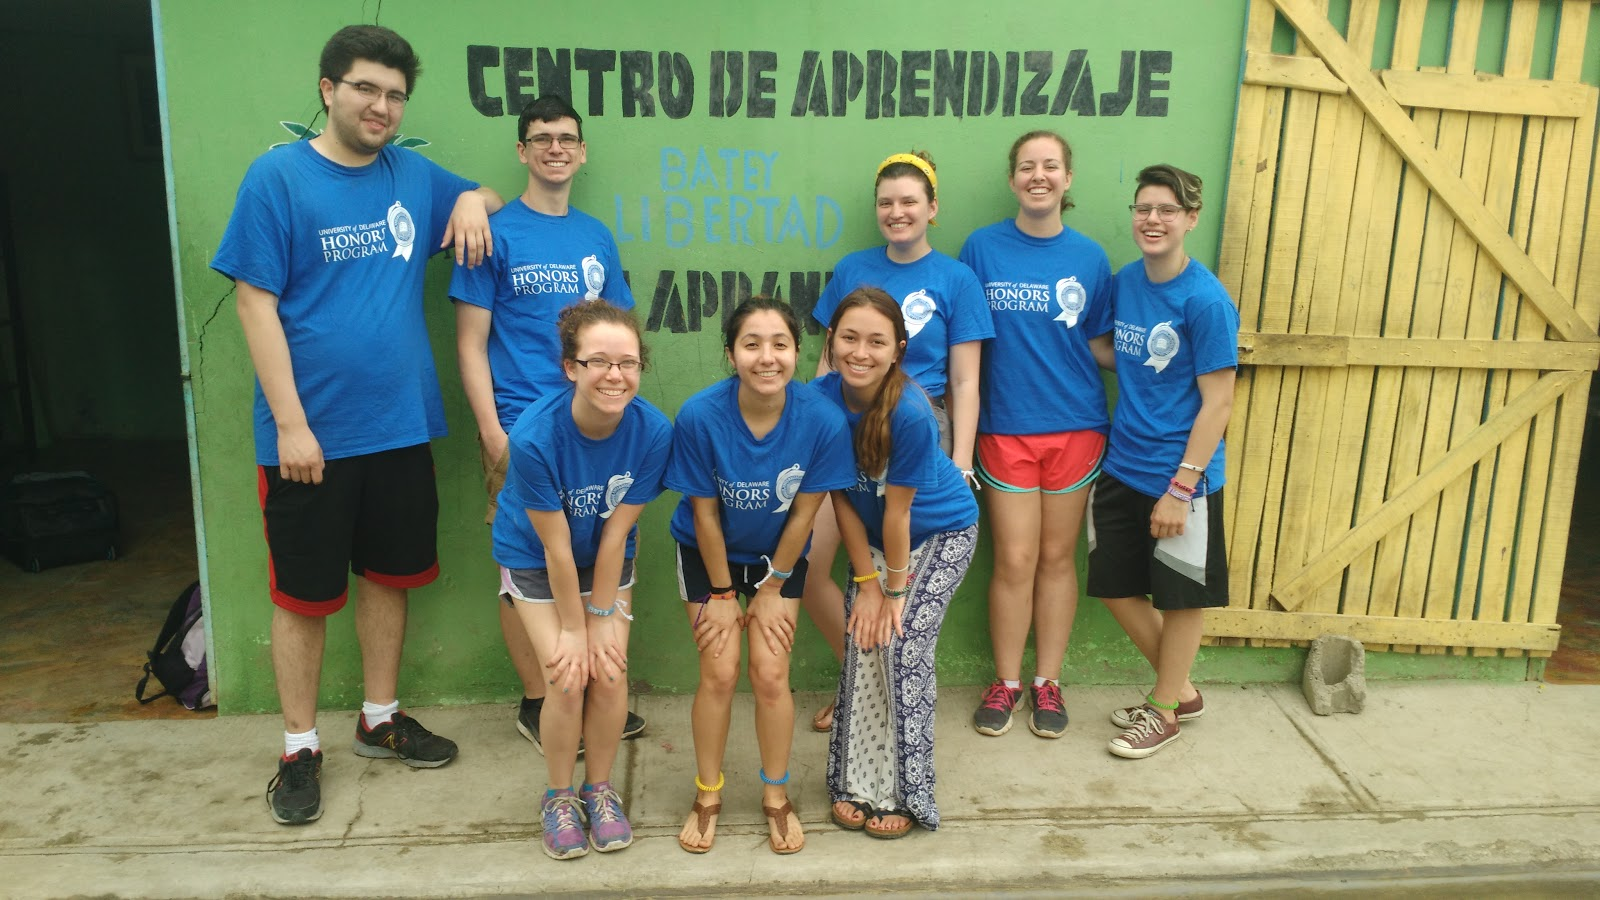 University of Delaware student group pose in front of the Batey Libertad Learning Center.